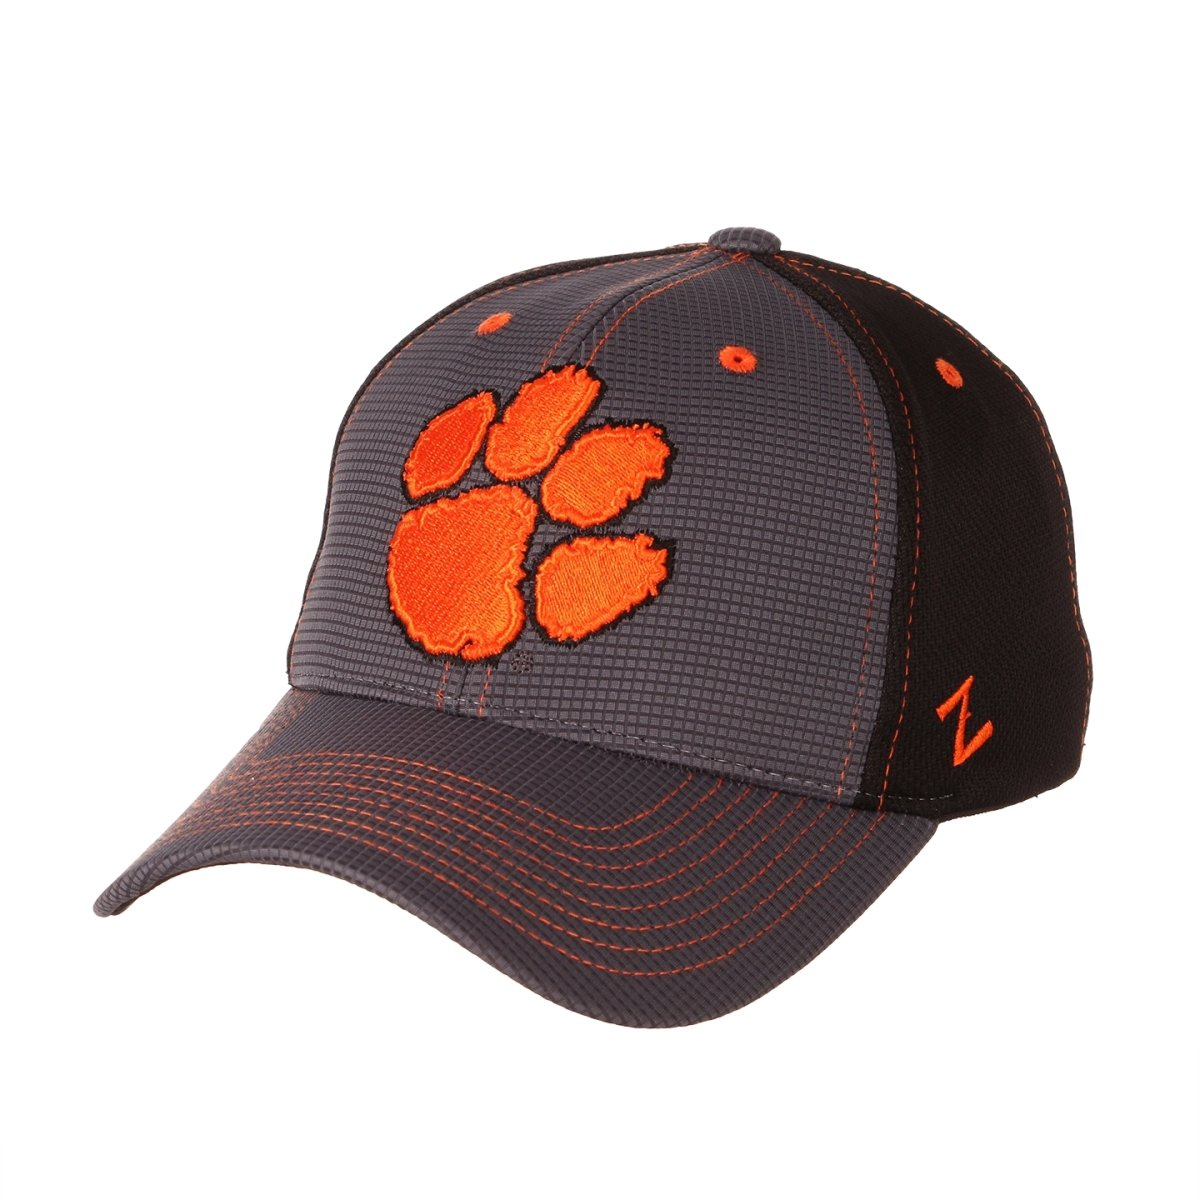 Clemson Tigers Forge Paw Print Stretch Fit Hat - Gray, Black, Orange - Mr. Knickerbocker